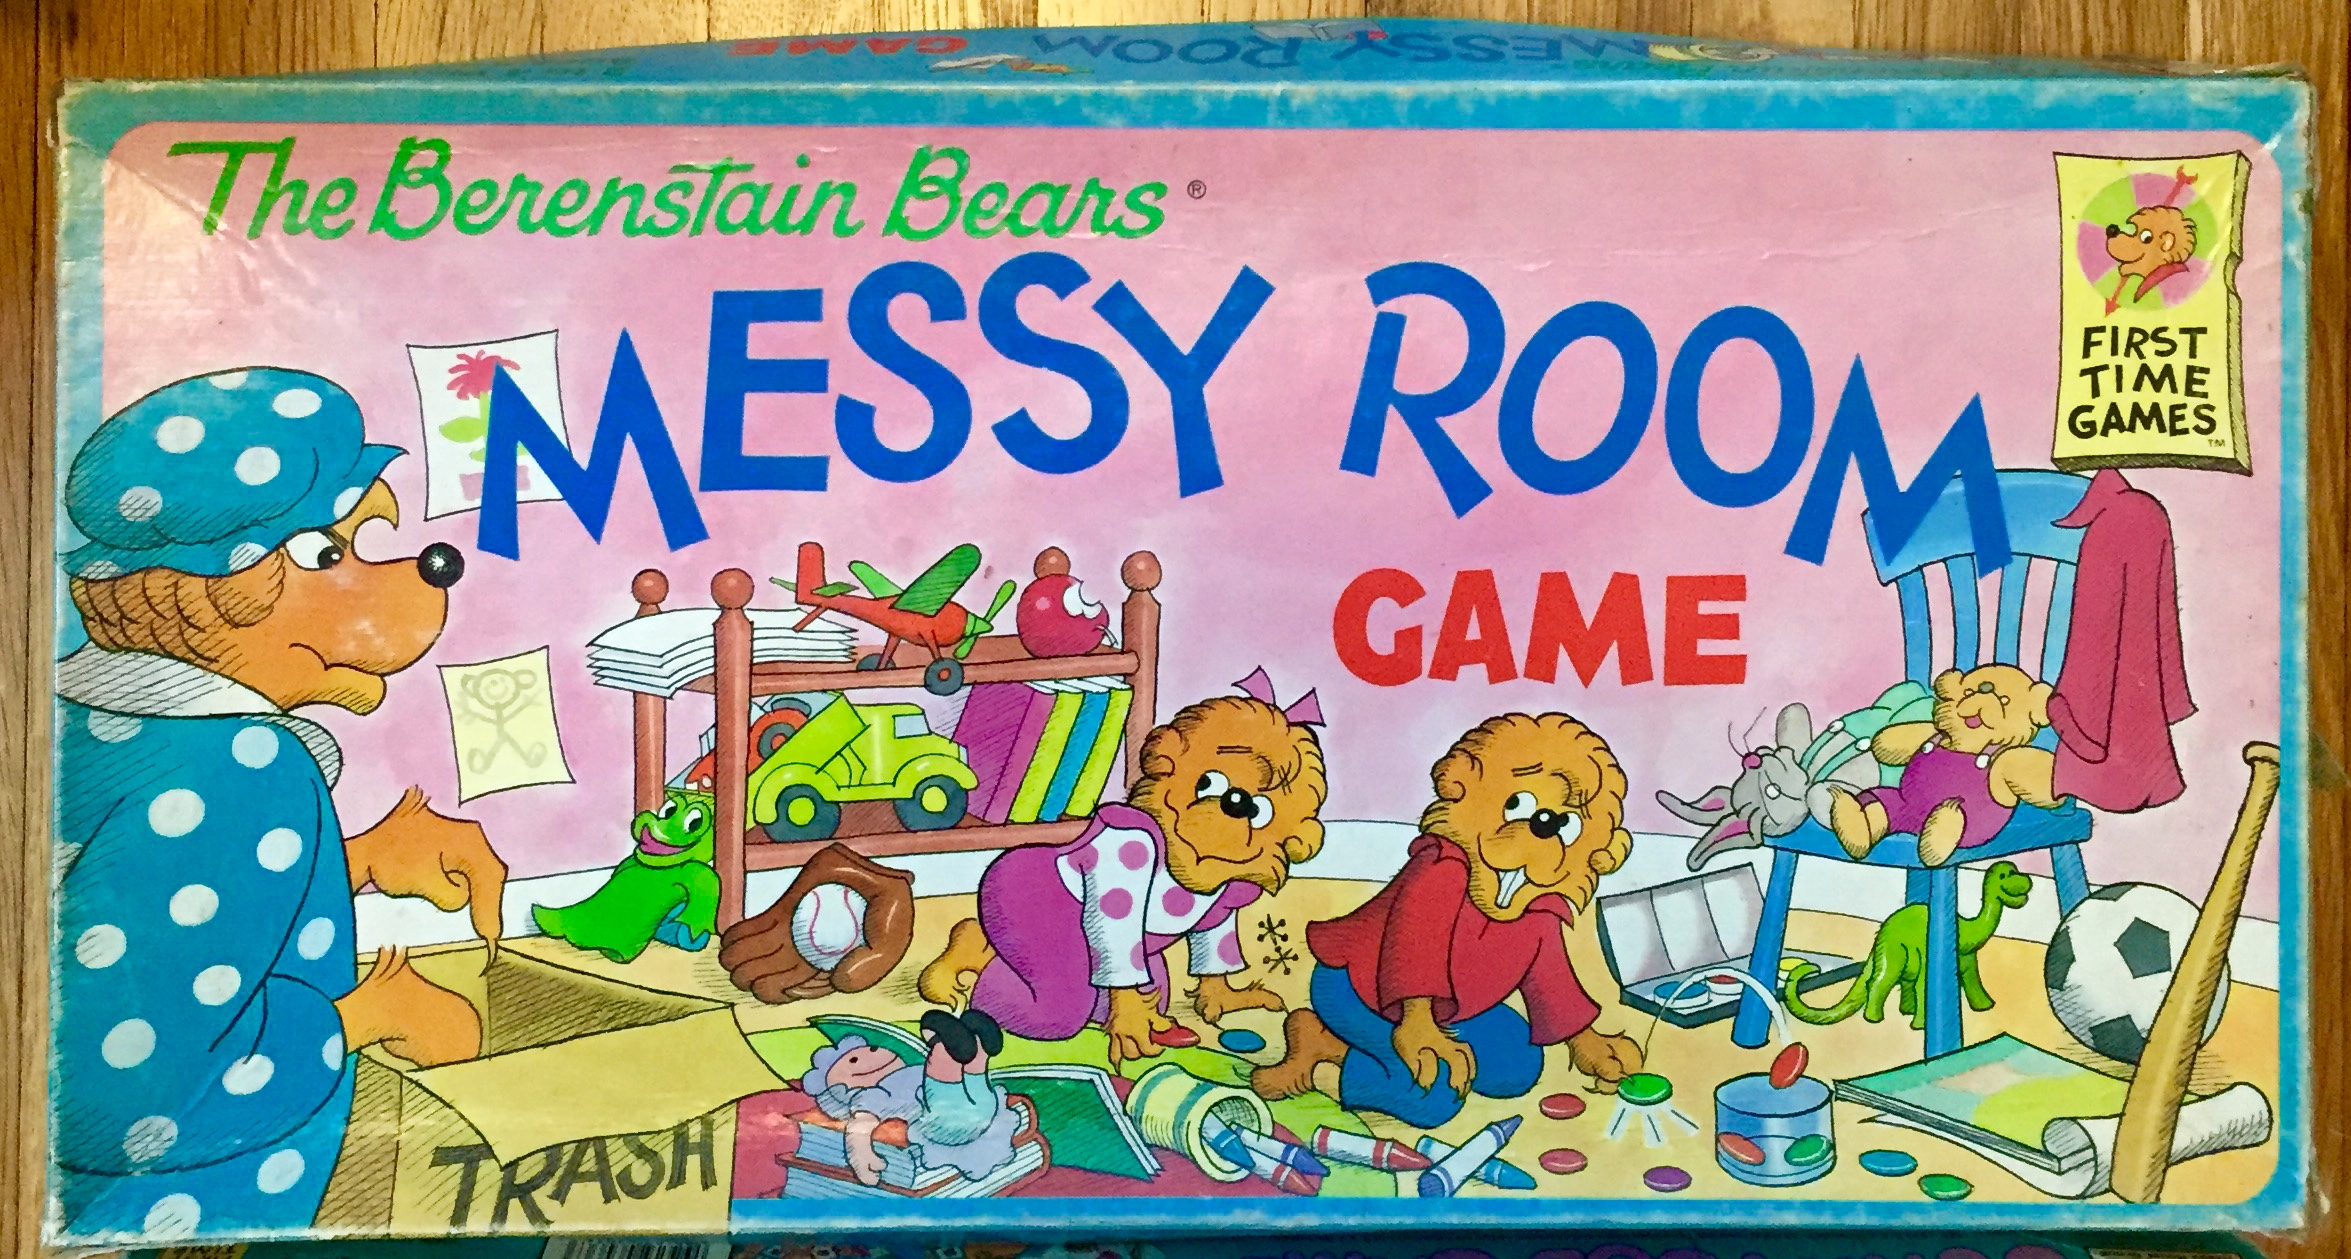 berenstain bears board games, card games, and playsets – berenstain